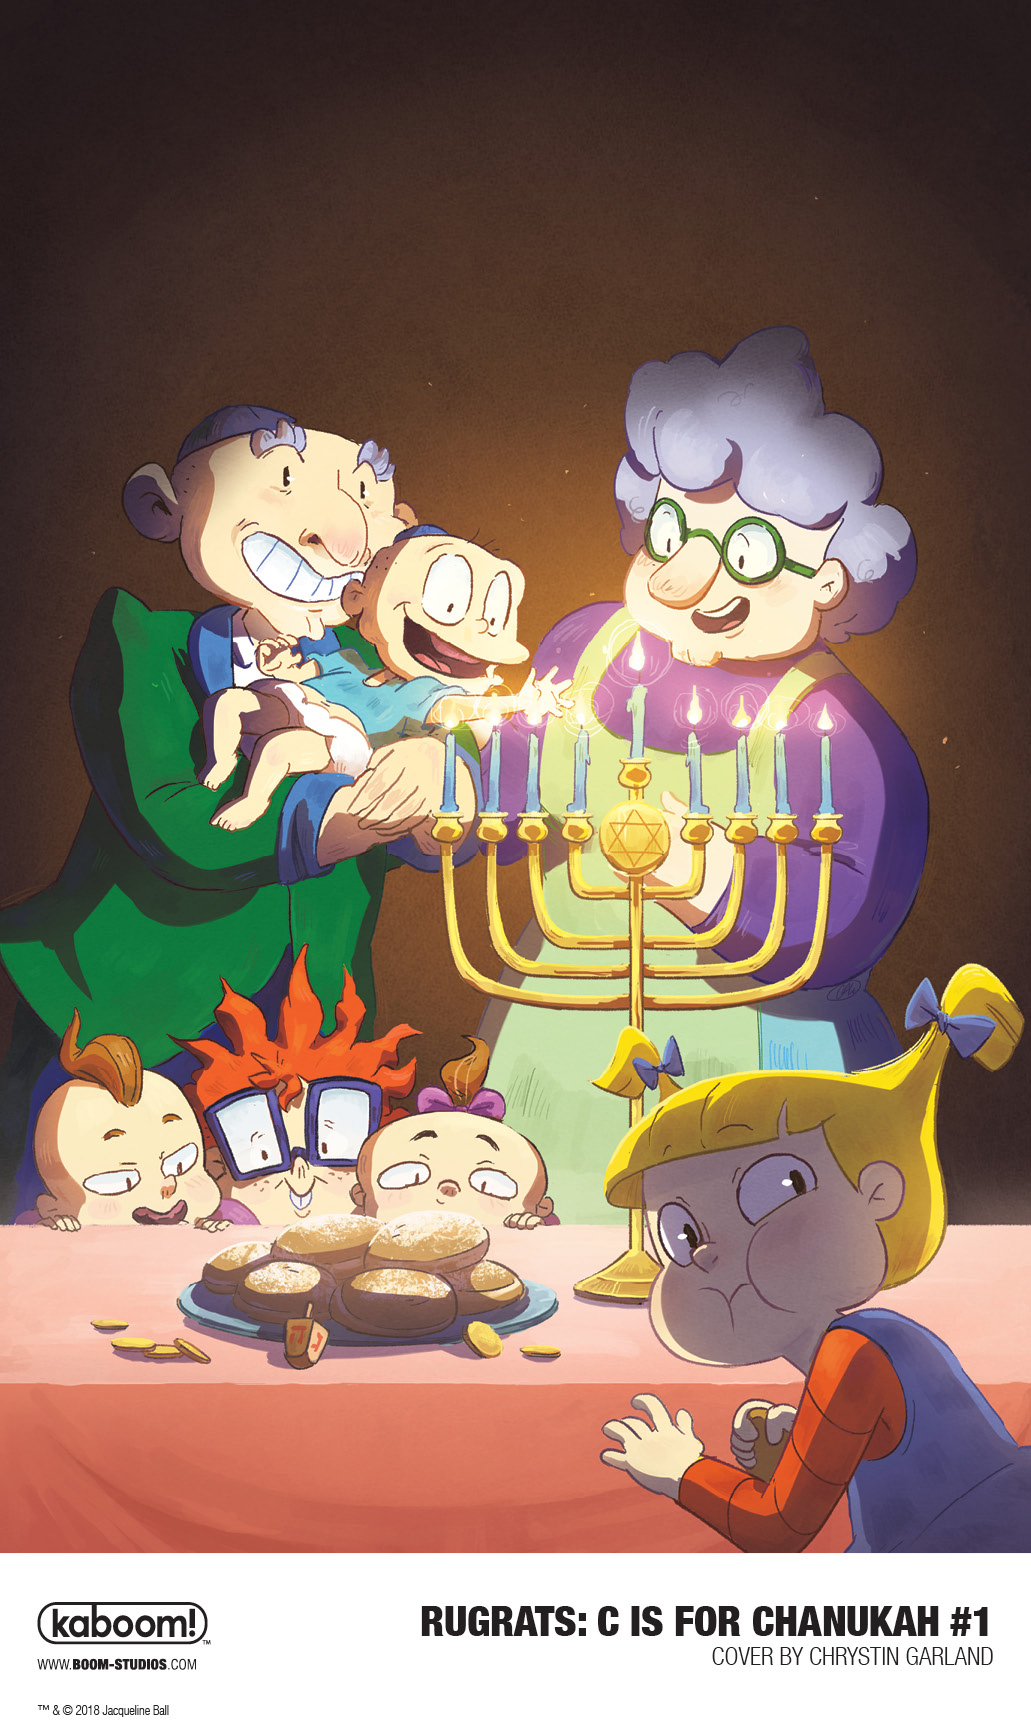 Unwrap Rugrats: C is for Chanukah Holiday Special By Reading This Preview - Blee...